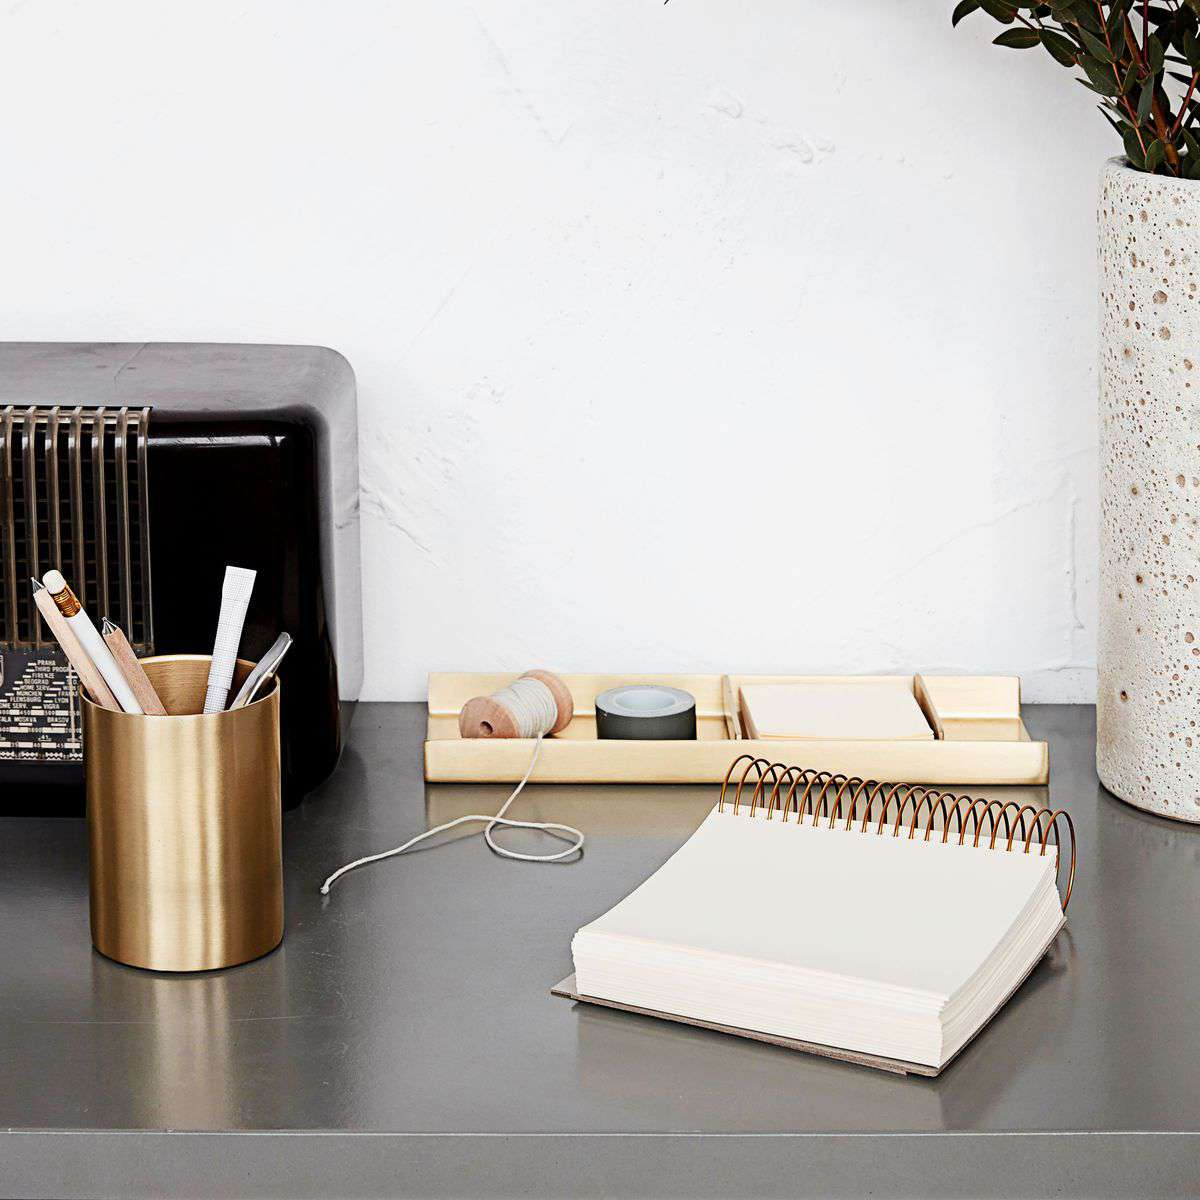 Stationary Organizer brass